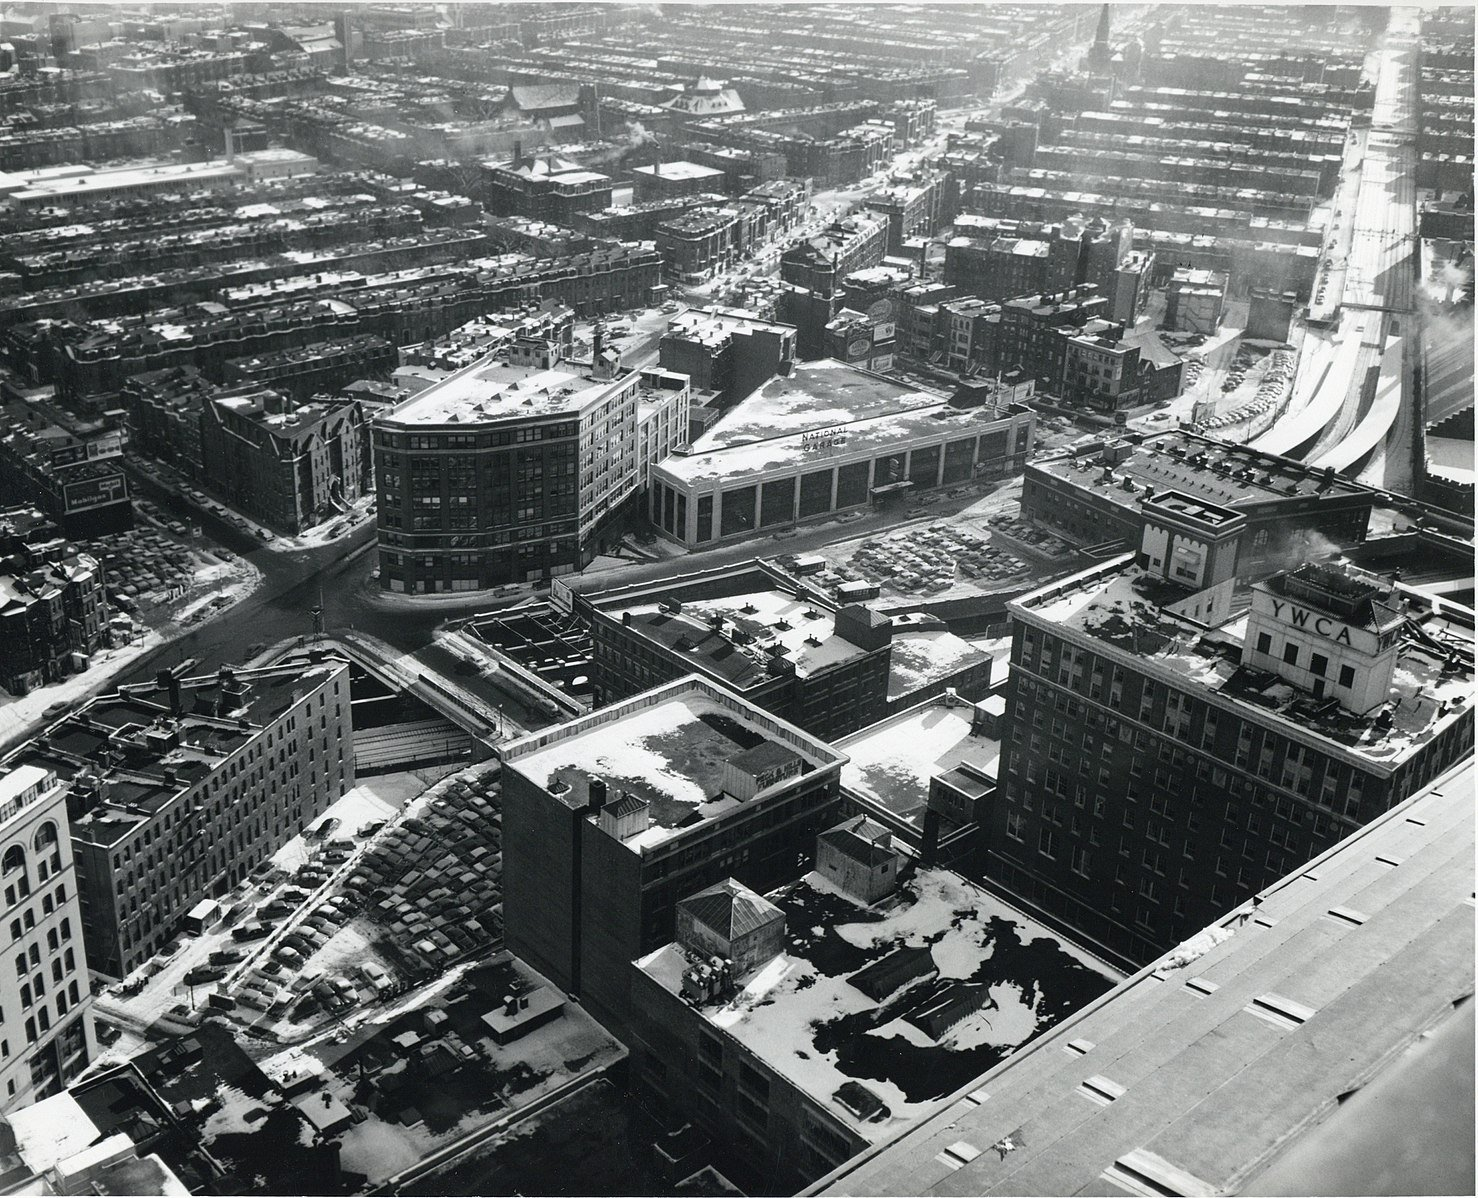 1959 view of the South End from the John Hancock Tower in Back Bay. Source: https://commons.wikimedia.org/wiki/File:South_End_from_old_John_Hancock_Building,_February_1959.jpg